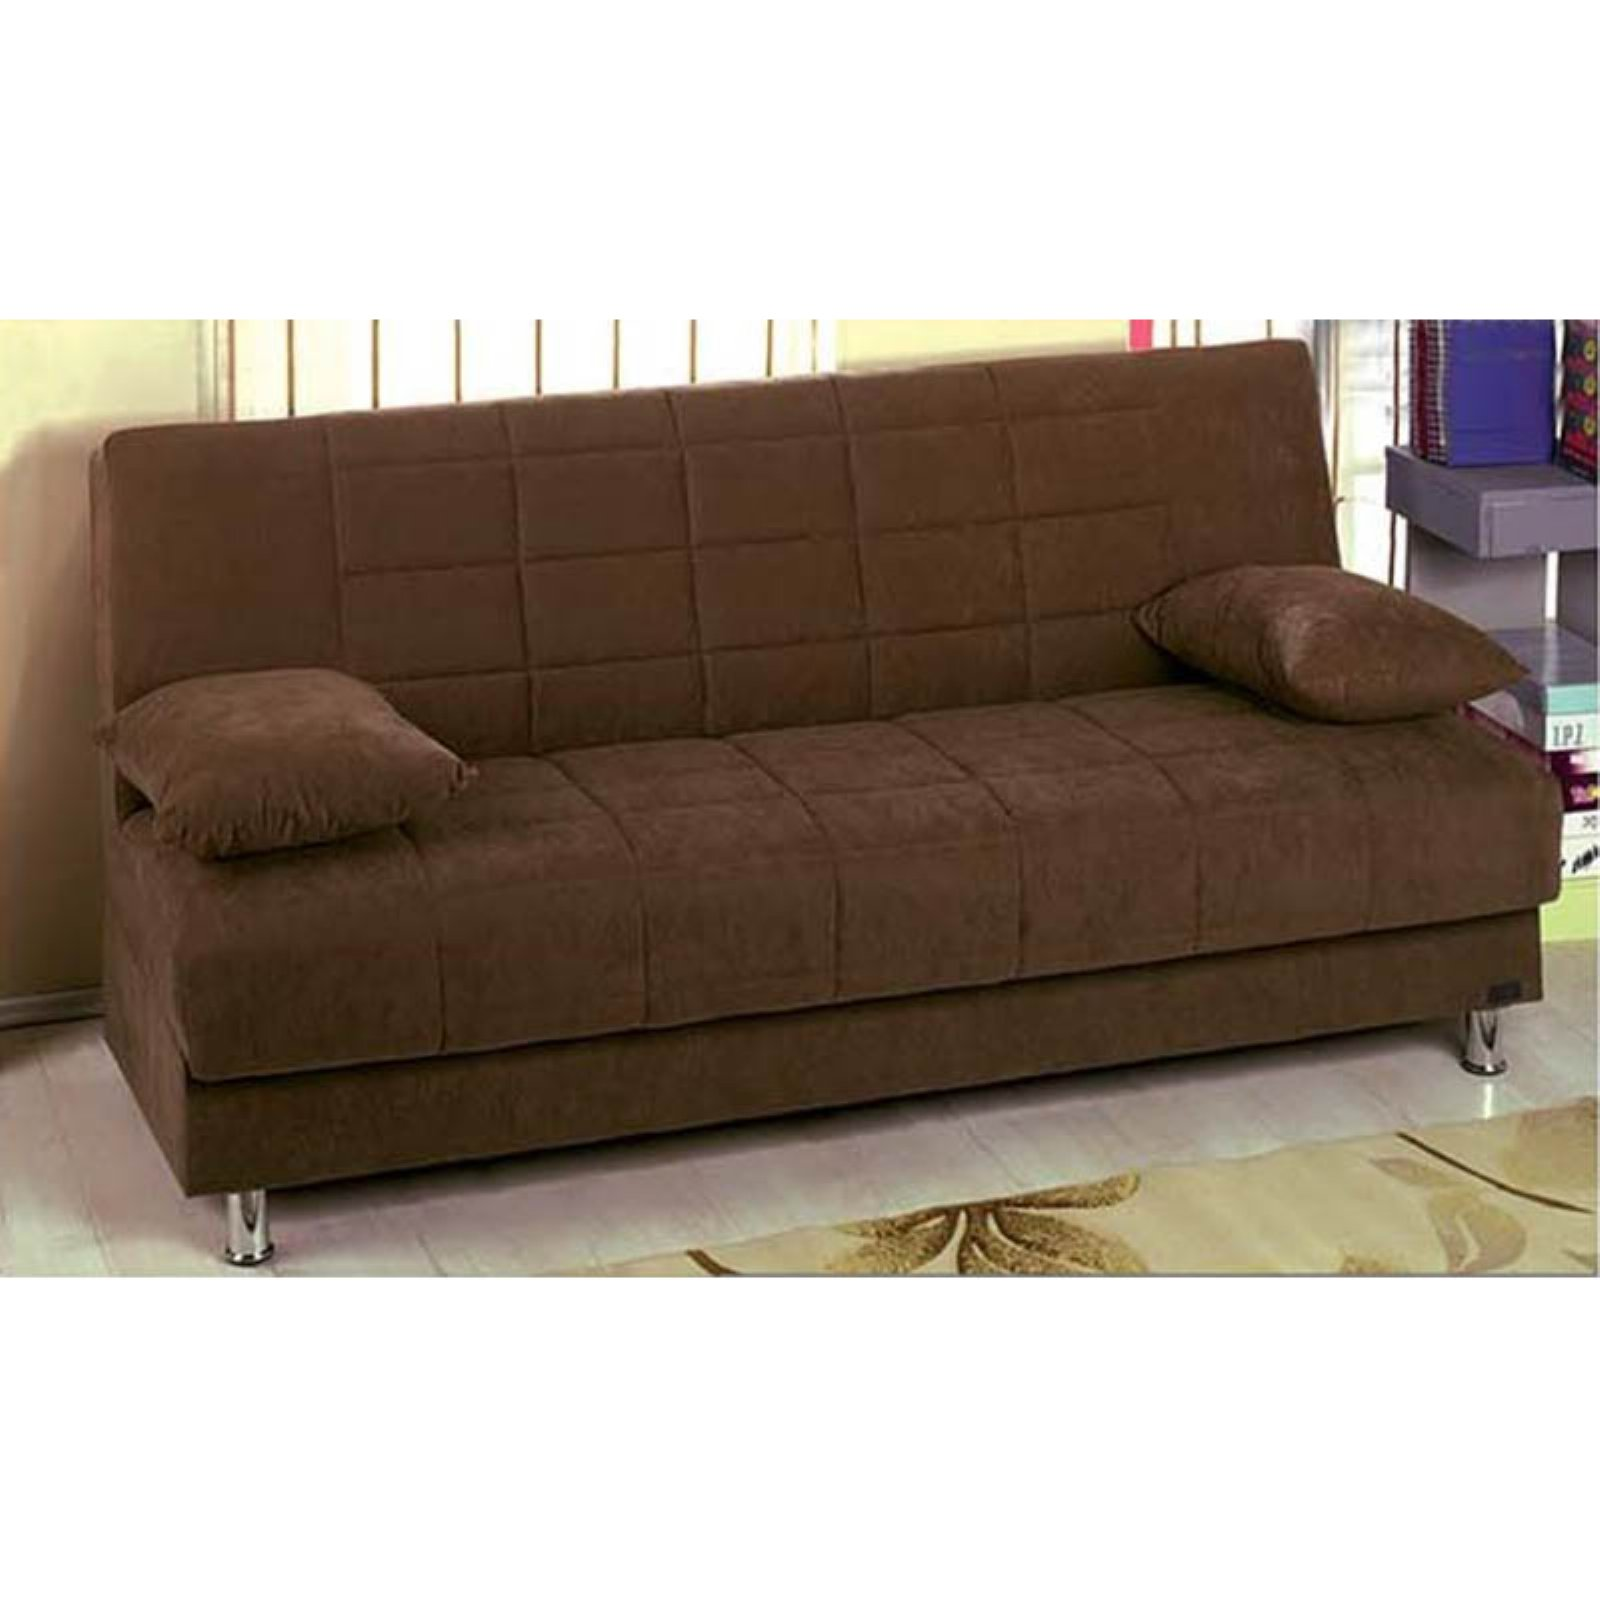 Empire Furniture USA Hamilton Modern Armless Convertible Sofa